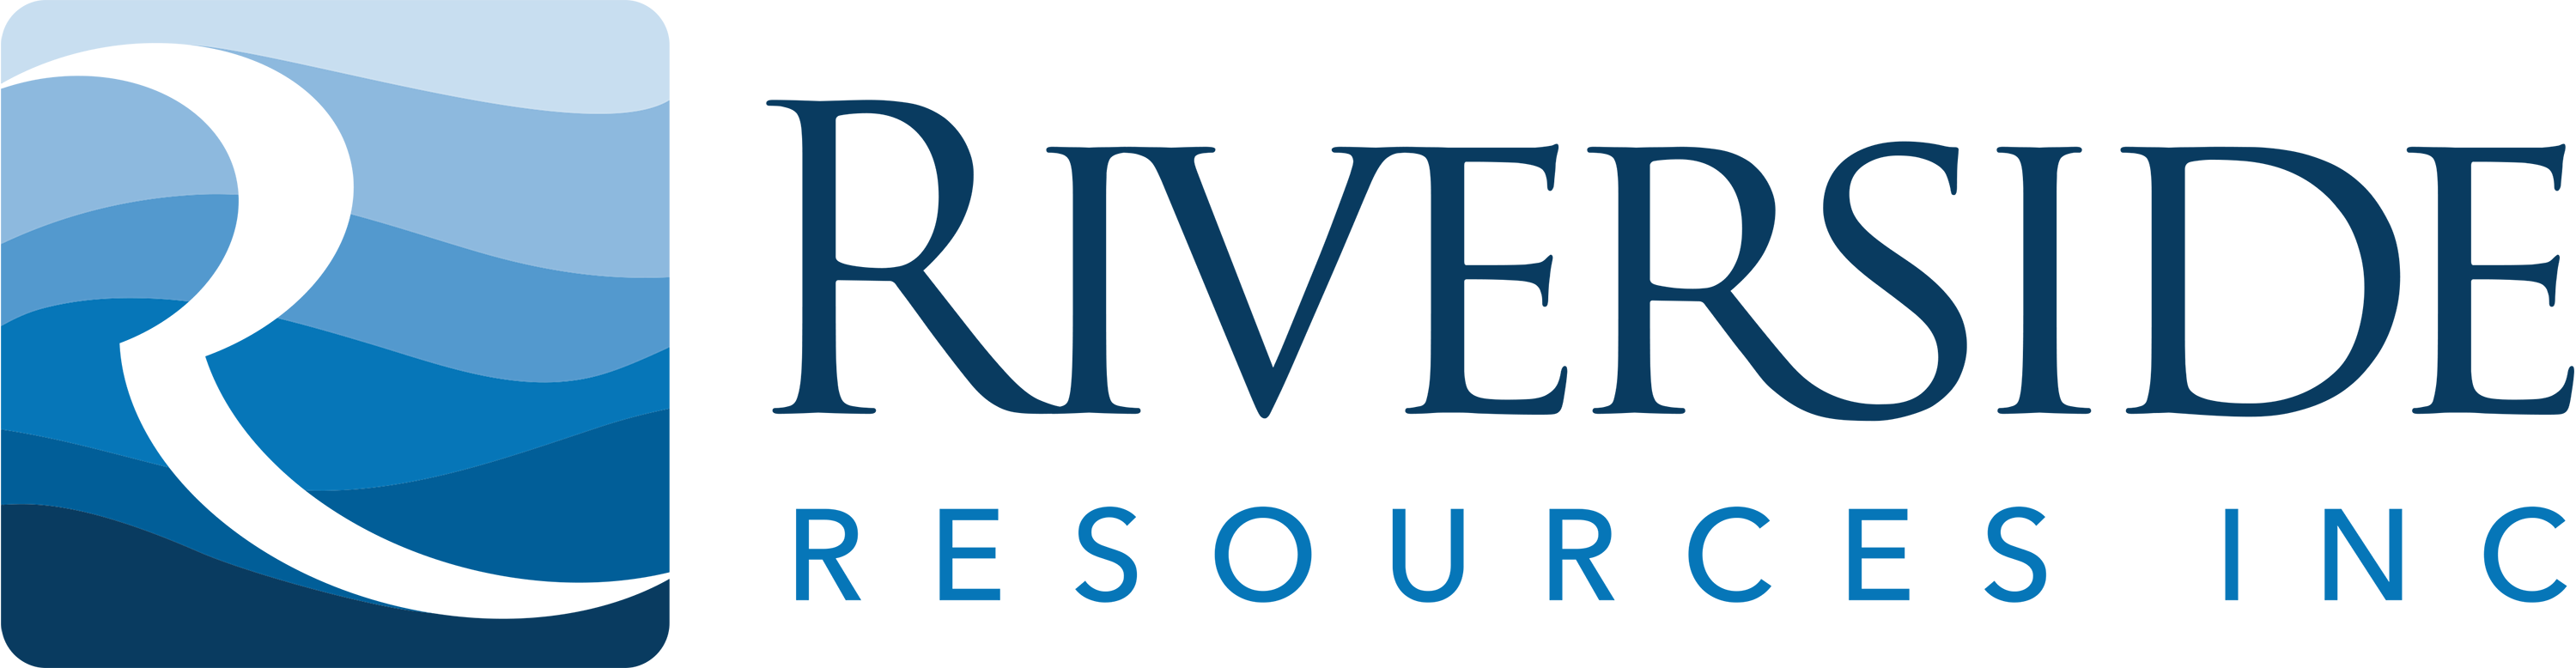 Riverside Resources